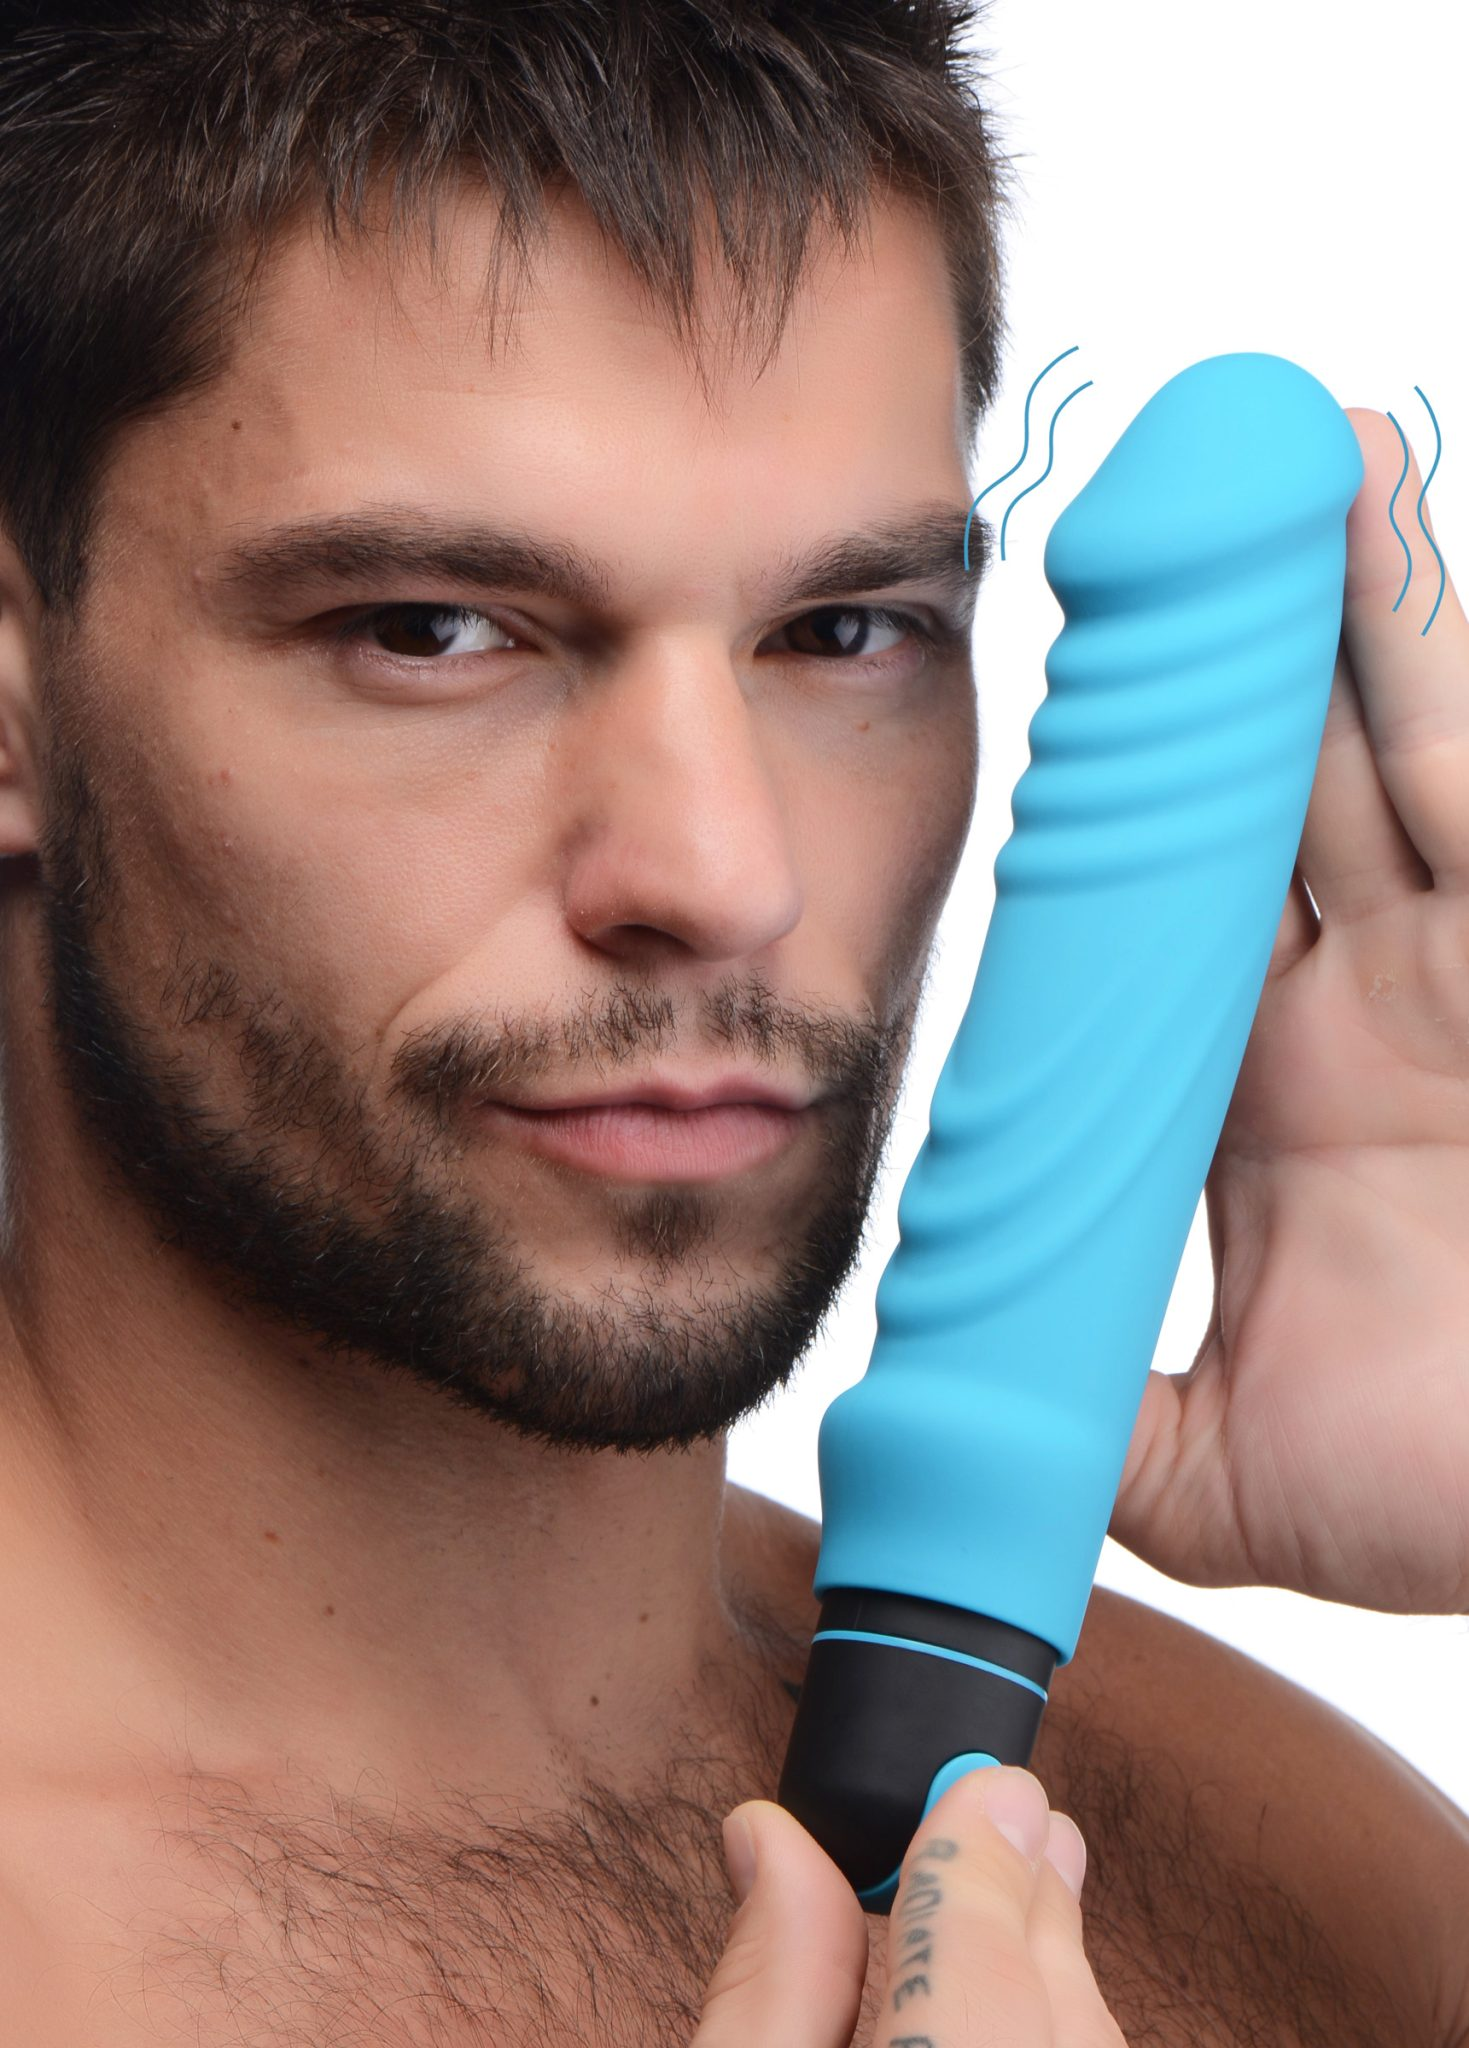 XL Silicone Bullet and Ribbed Sleeve